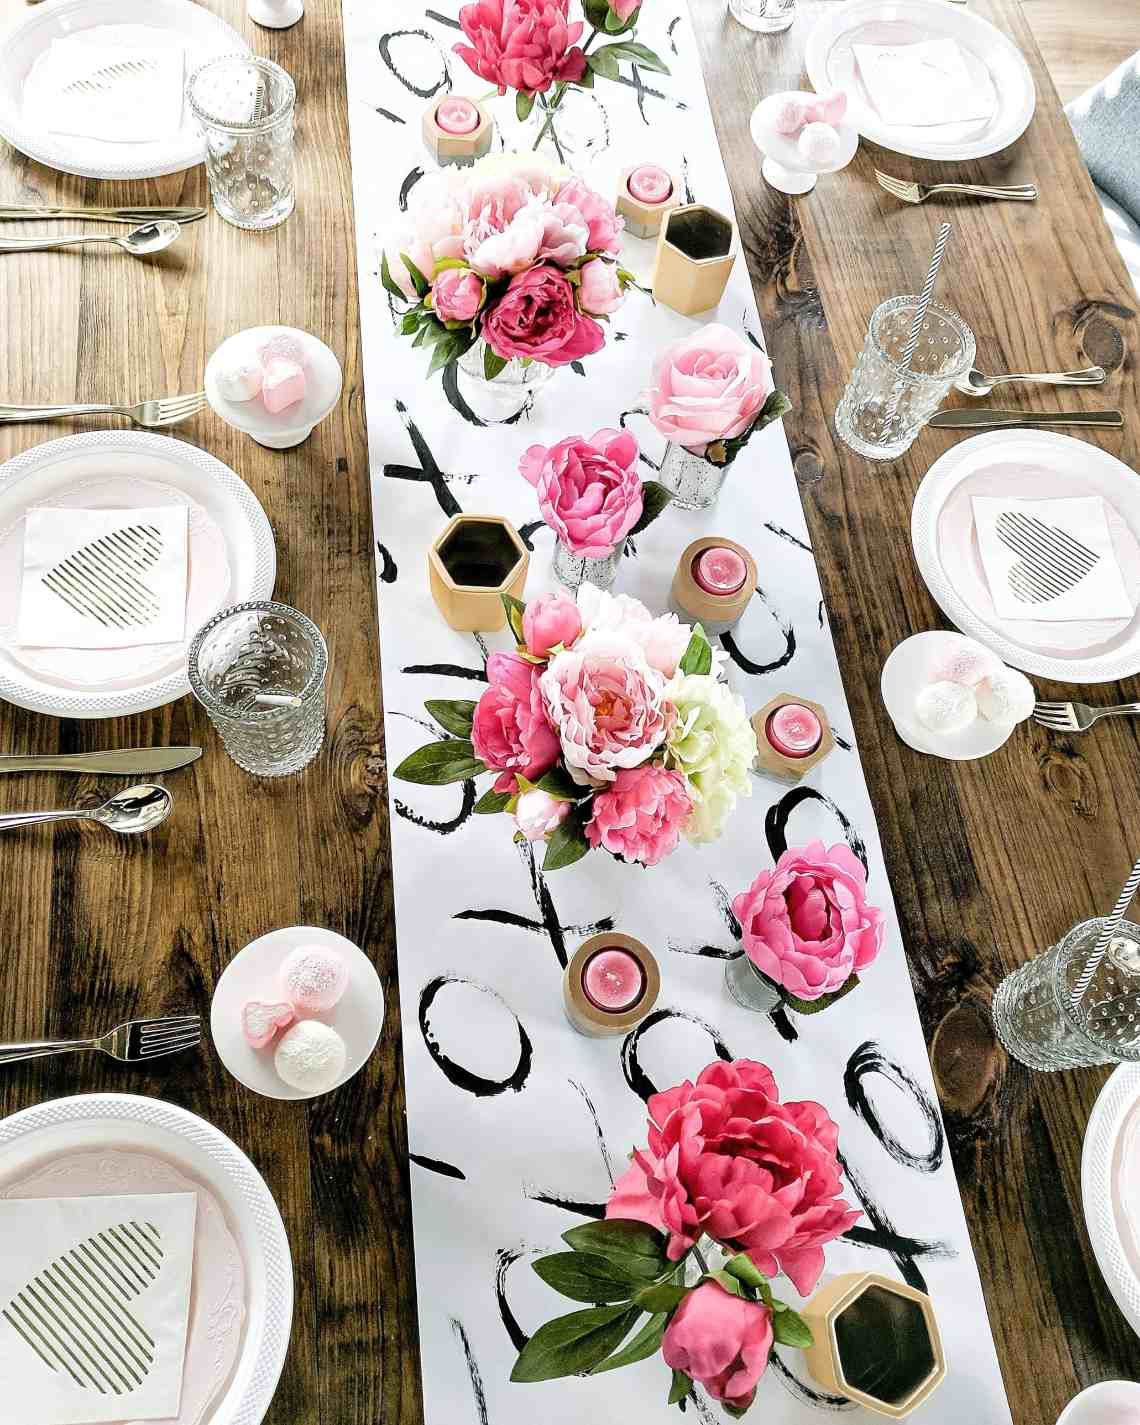 Table setting with wood table black and white table runner and floral and gold accents